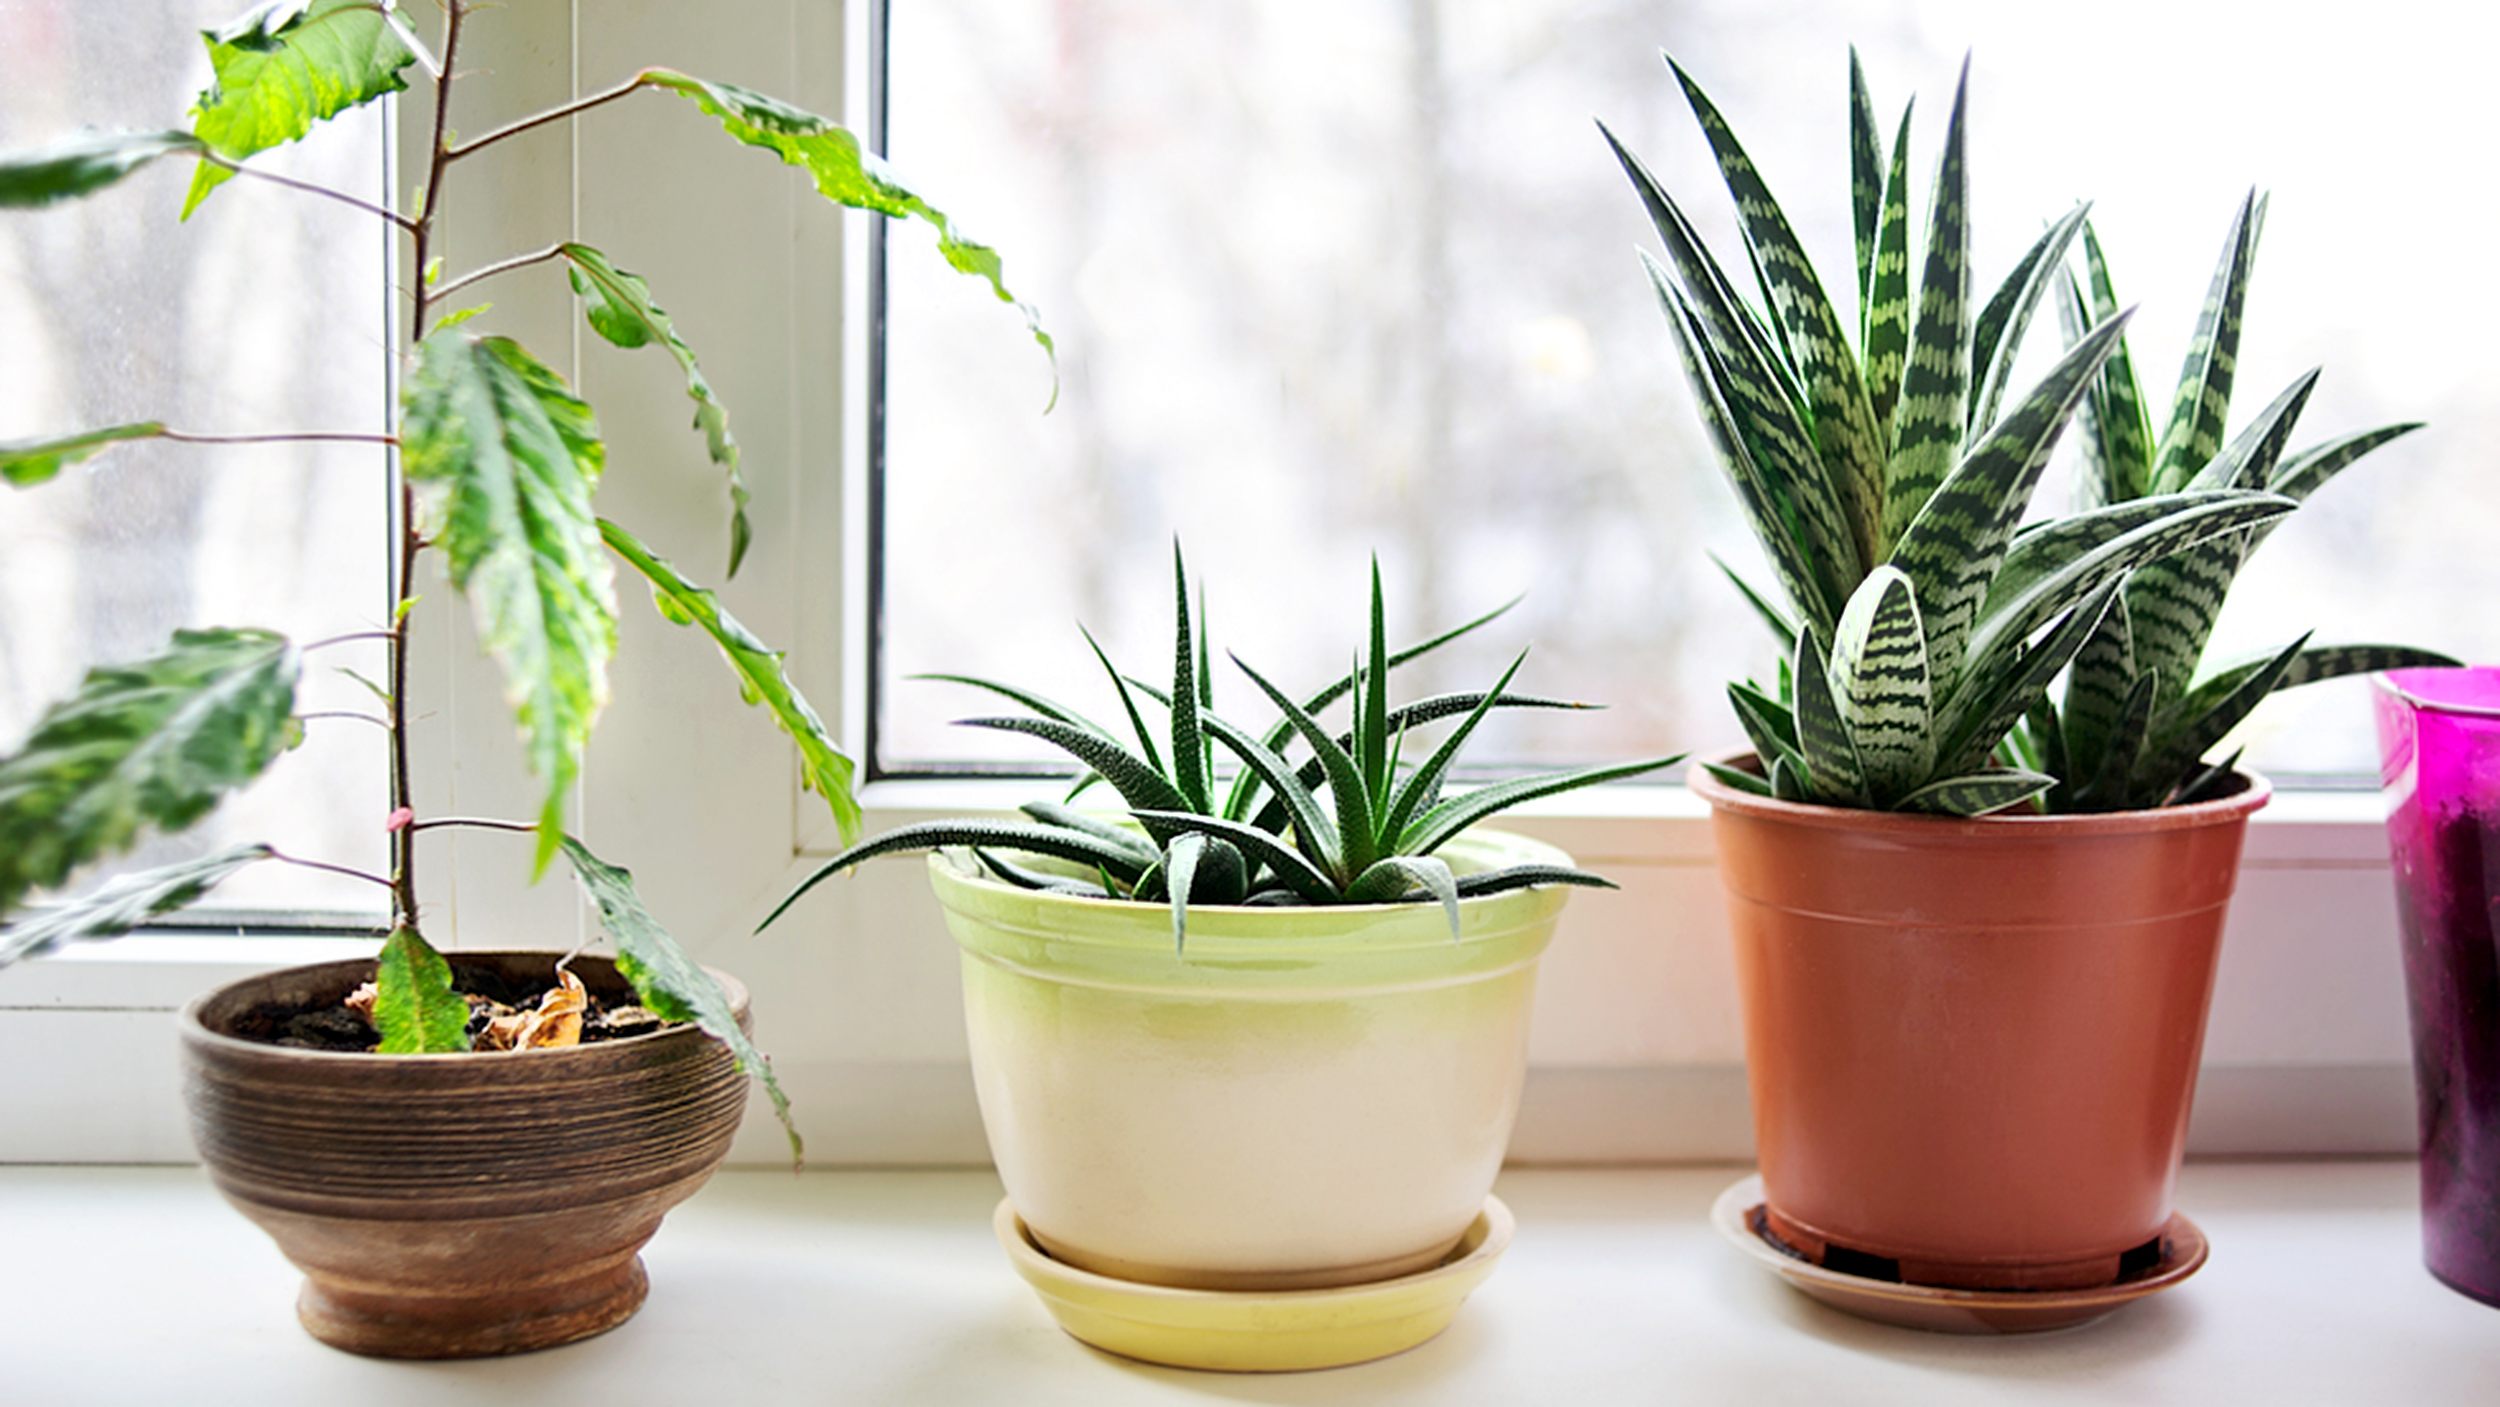 3 indoor plants that actually clean the air Images of indoor plants